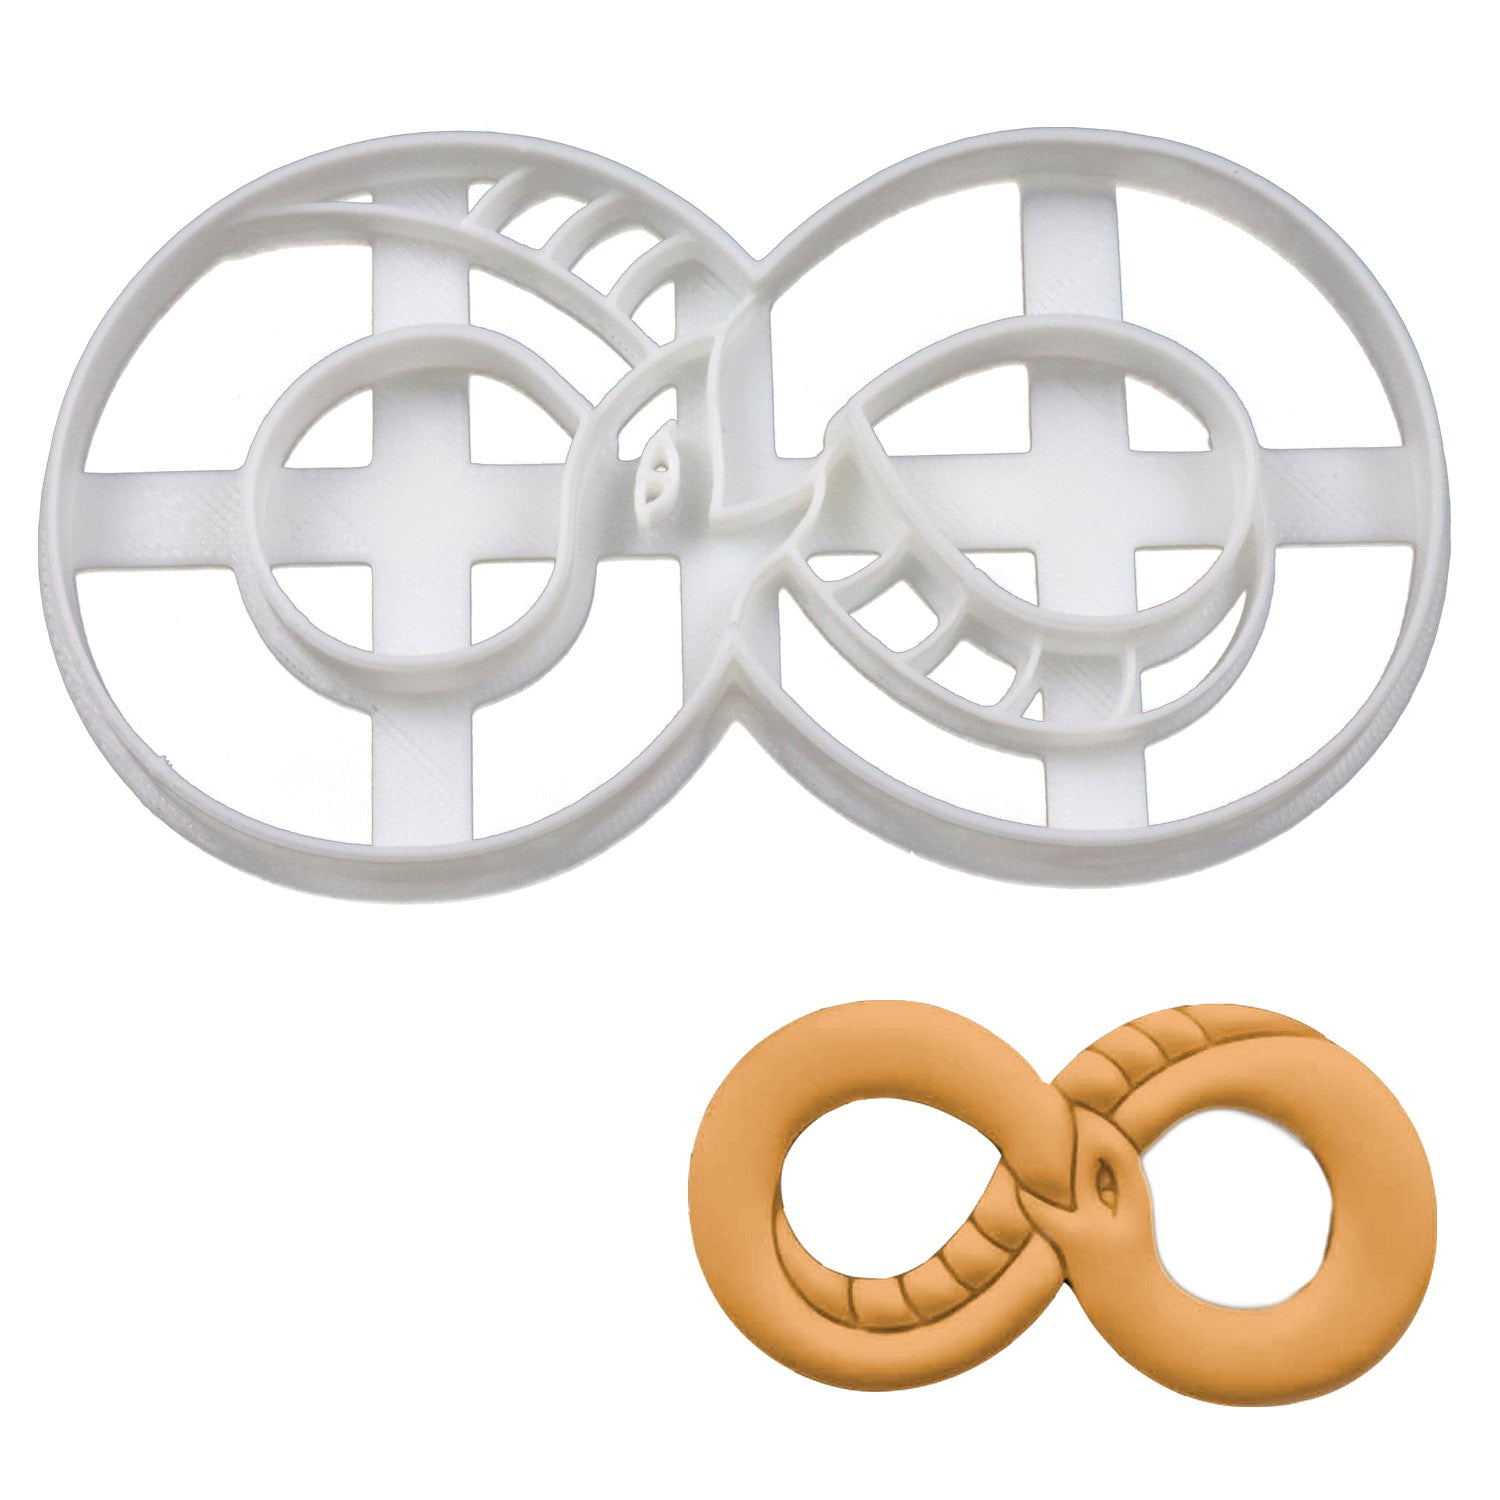 Ouroboros Cookie Cutter